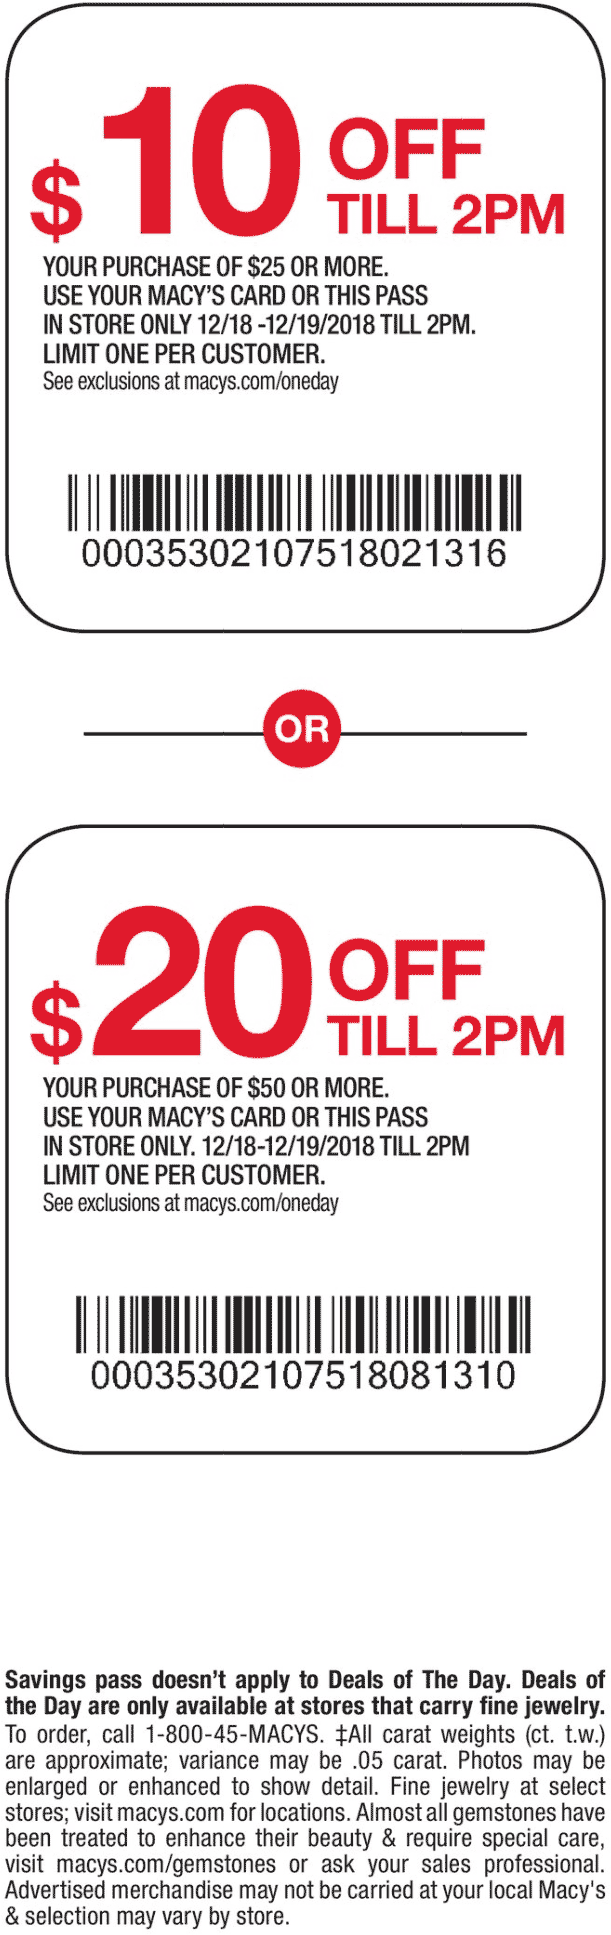 Macys Coupon September 2019 $10 off $25 & more til 2p at Macys